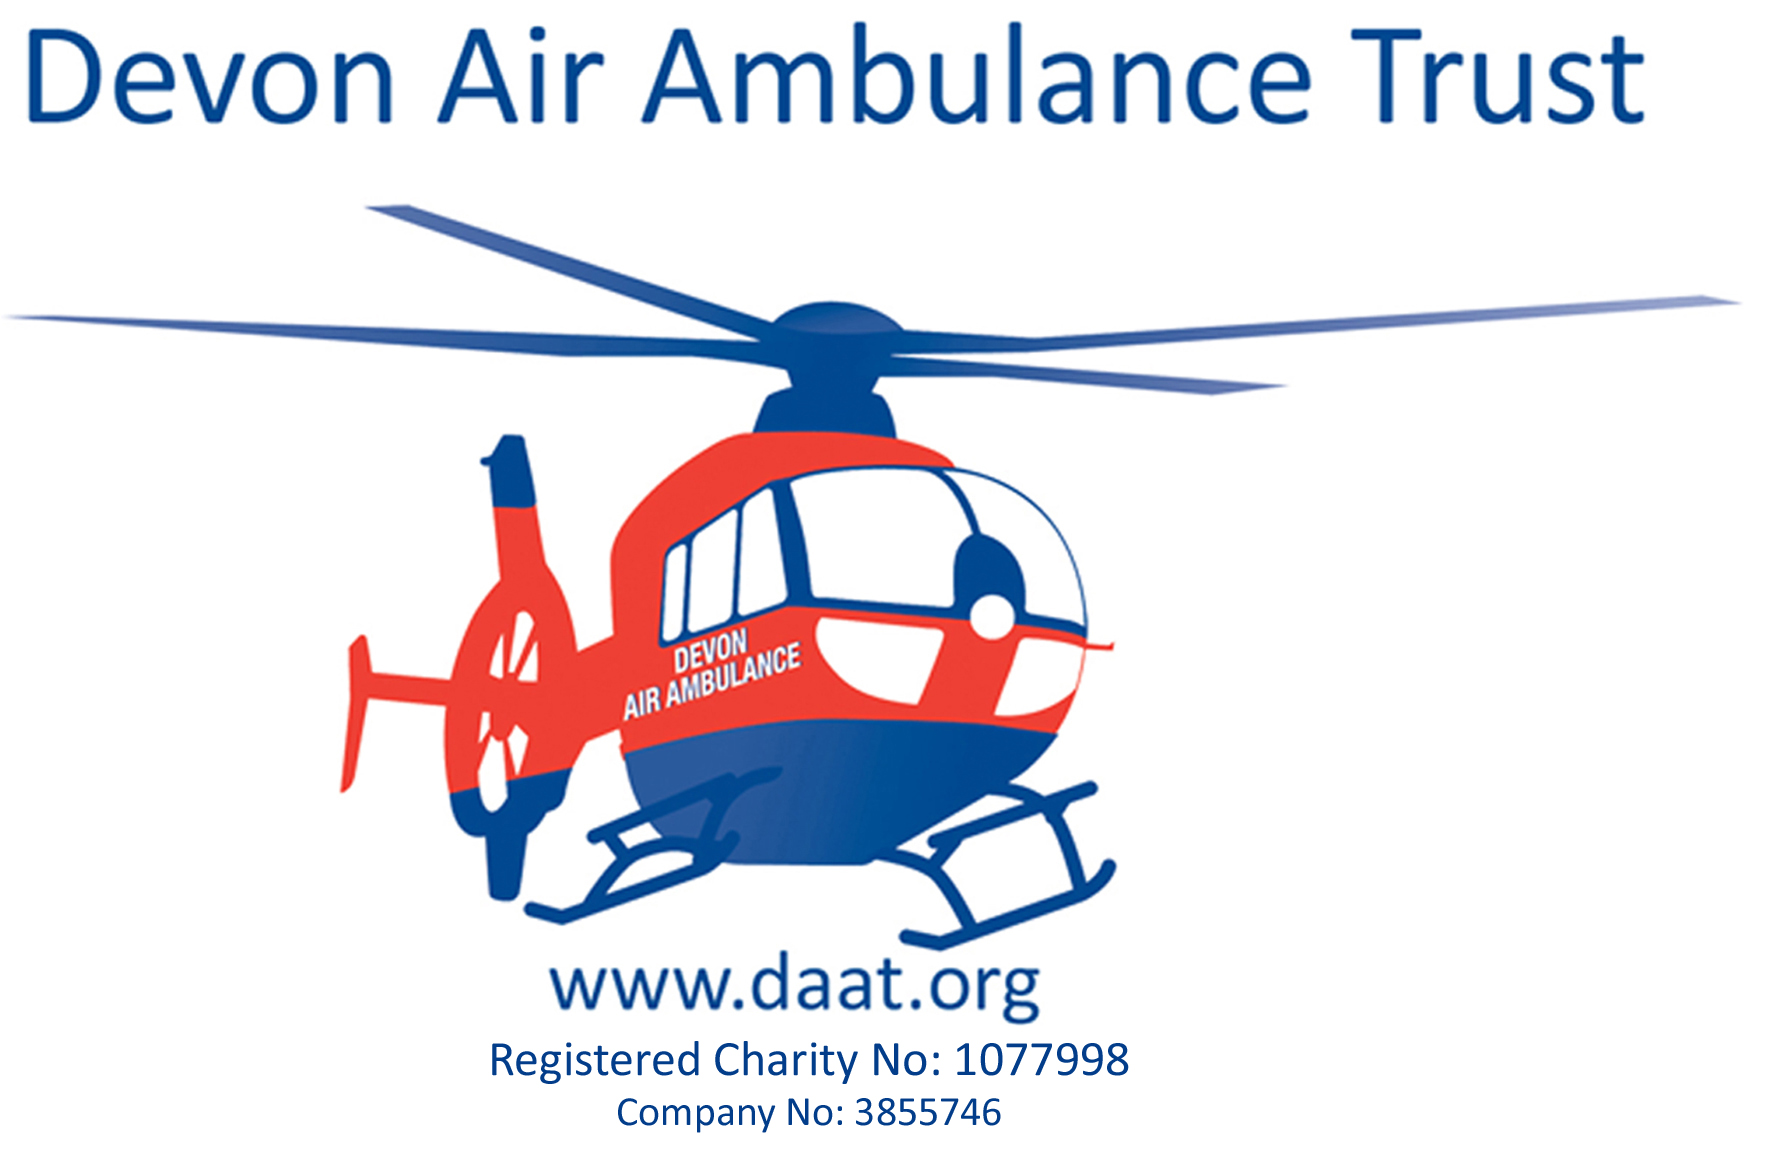 Ambulance clipart helicopter. Full members association of